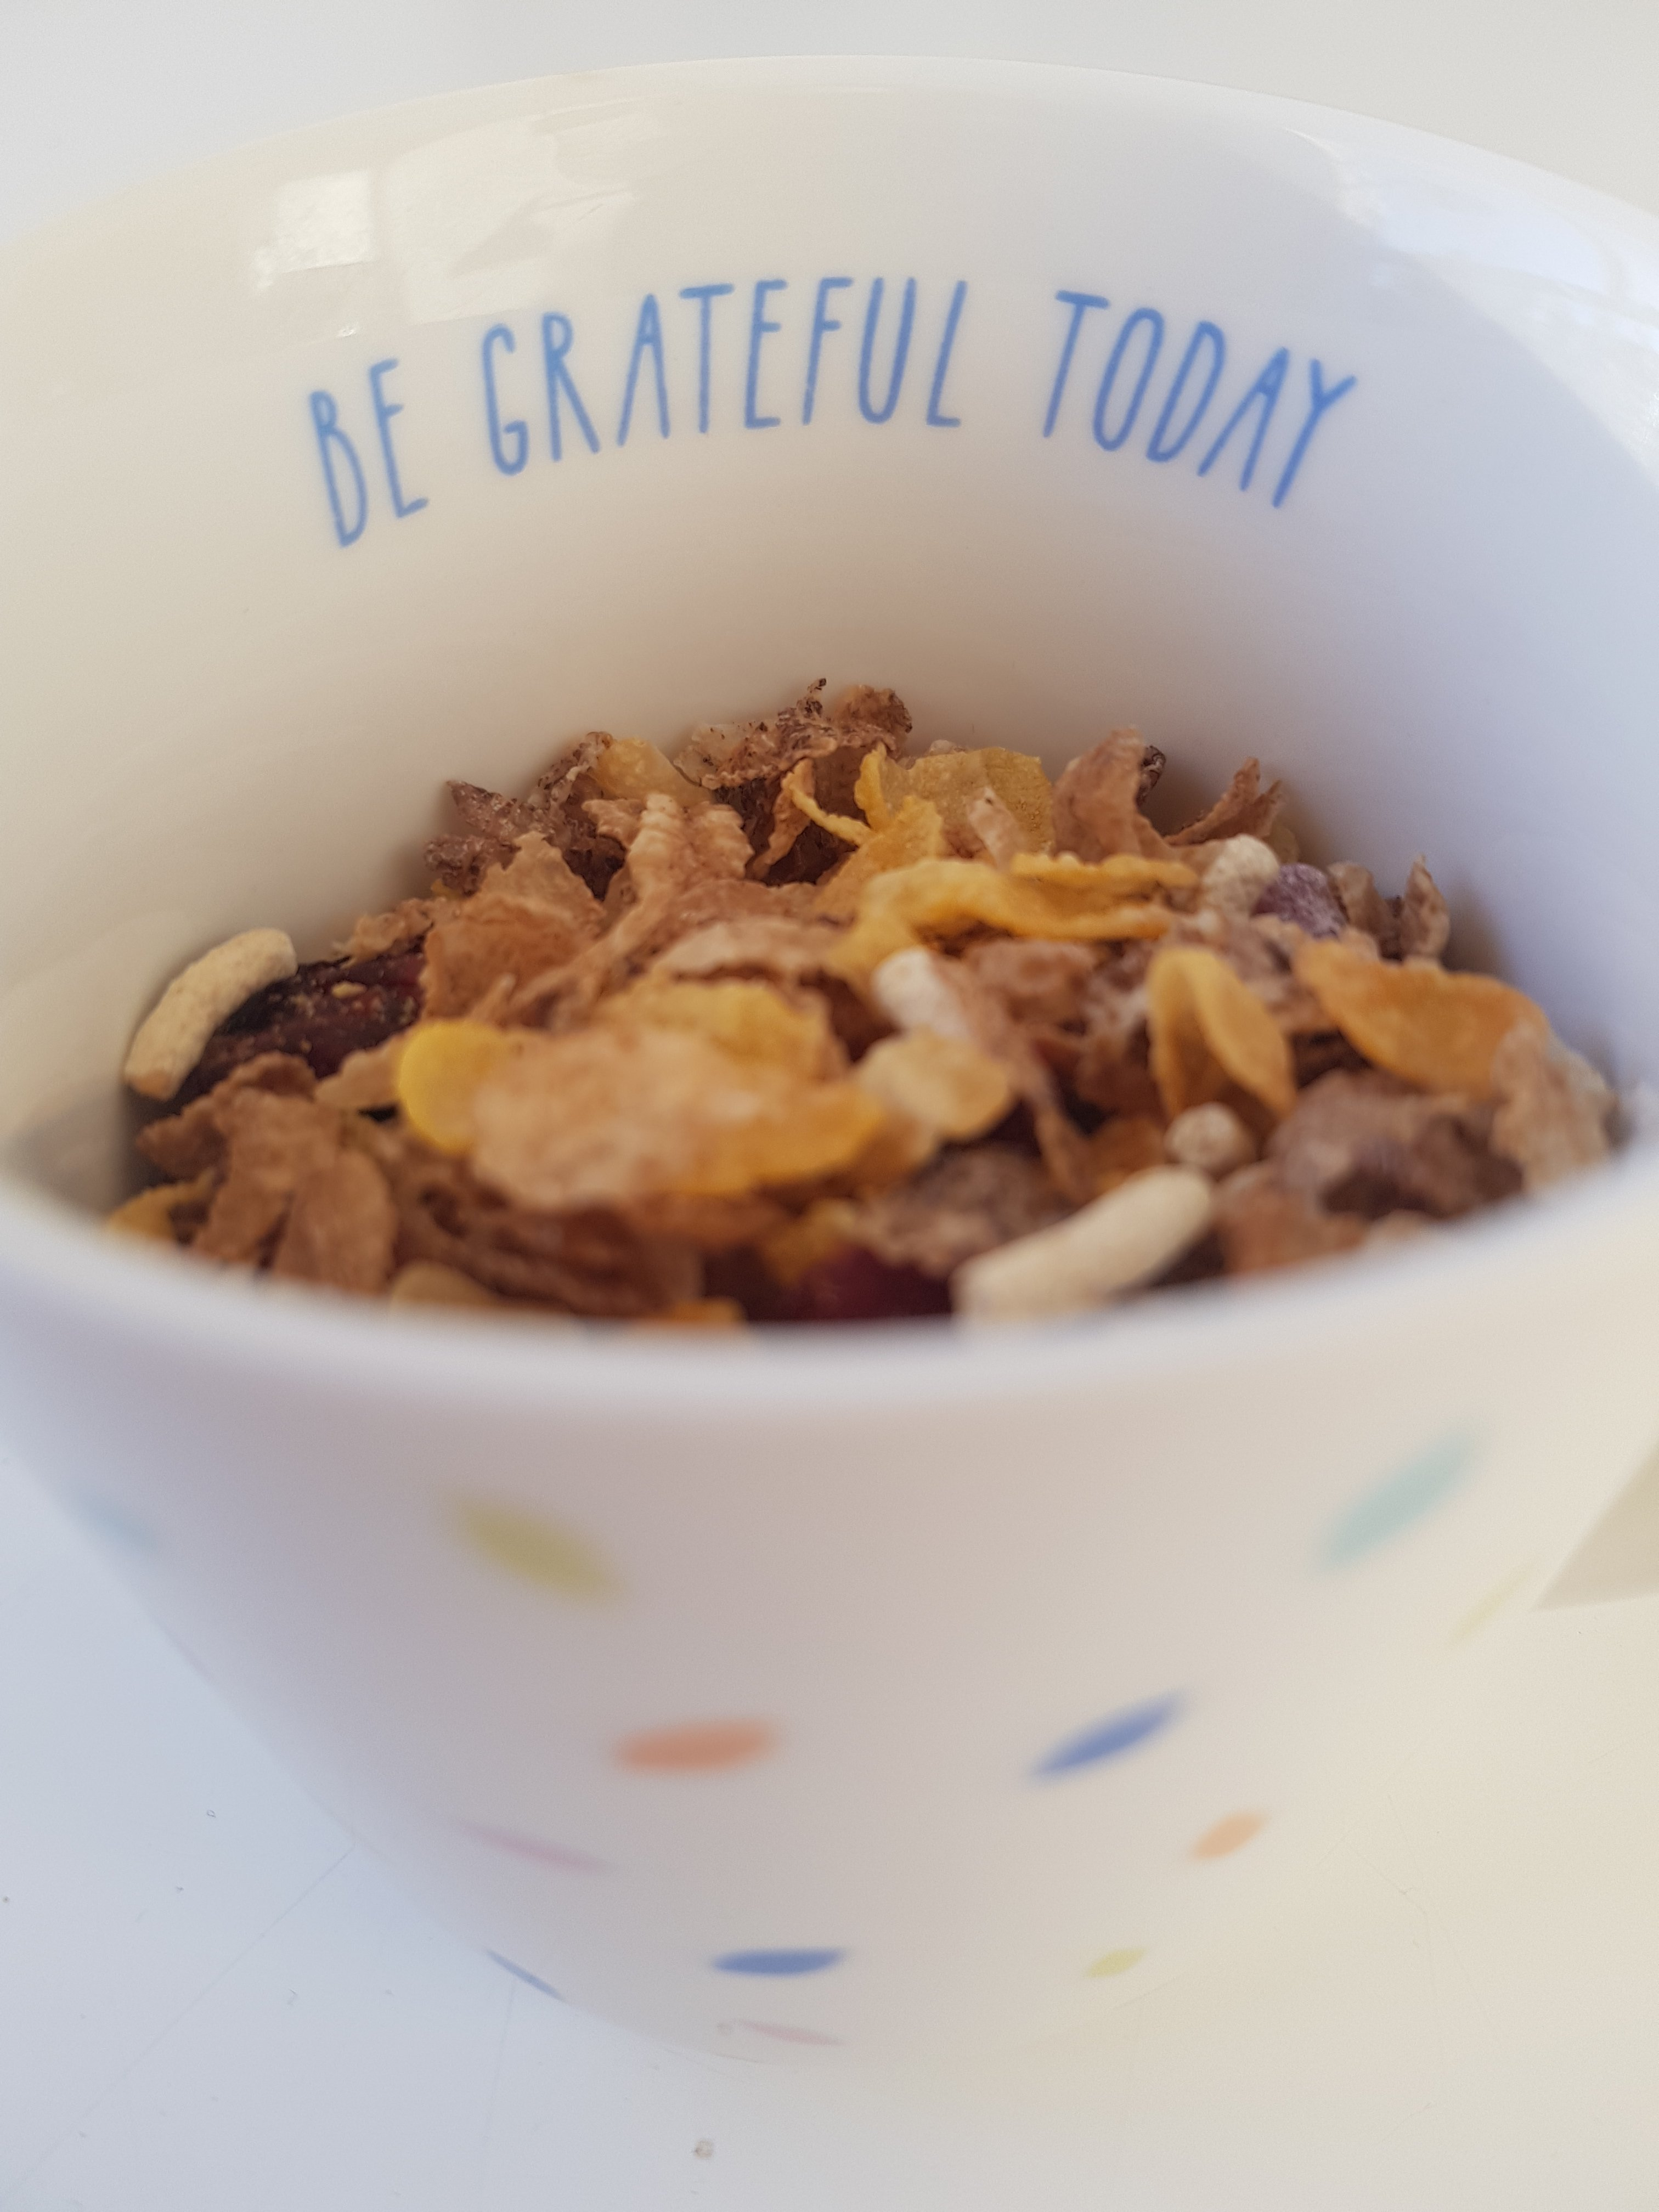 Be Grateful Today mug with cereal